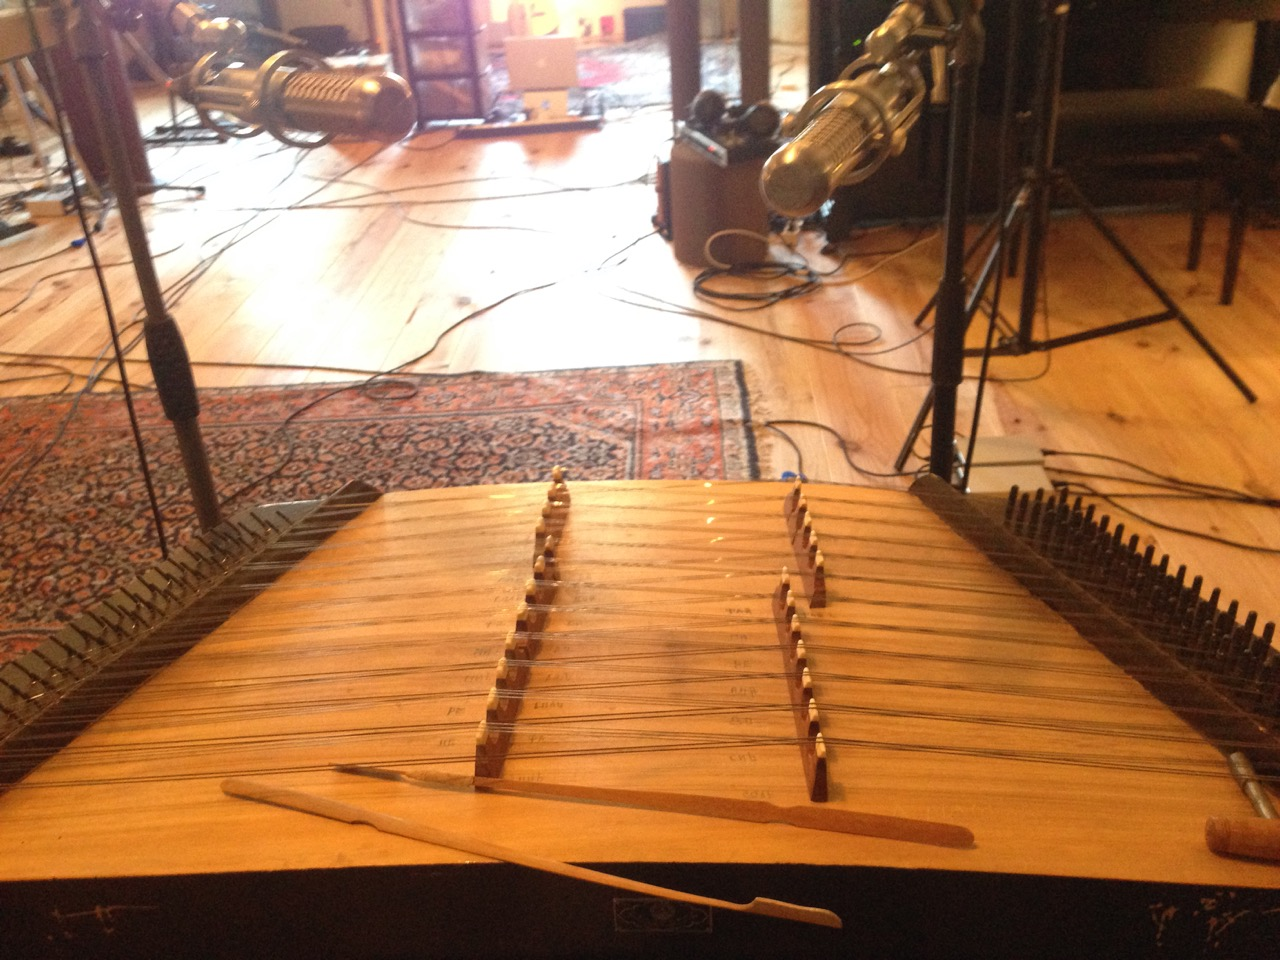 Persian Hammered Dulcimer. Great instrument for atmospheric sounds as well as a new flavor arrangements.